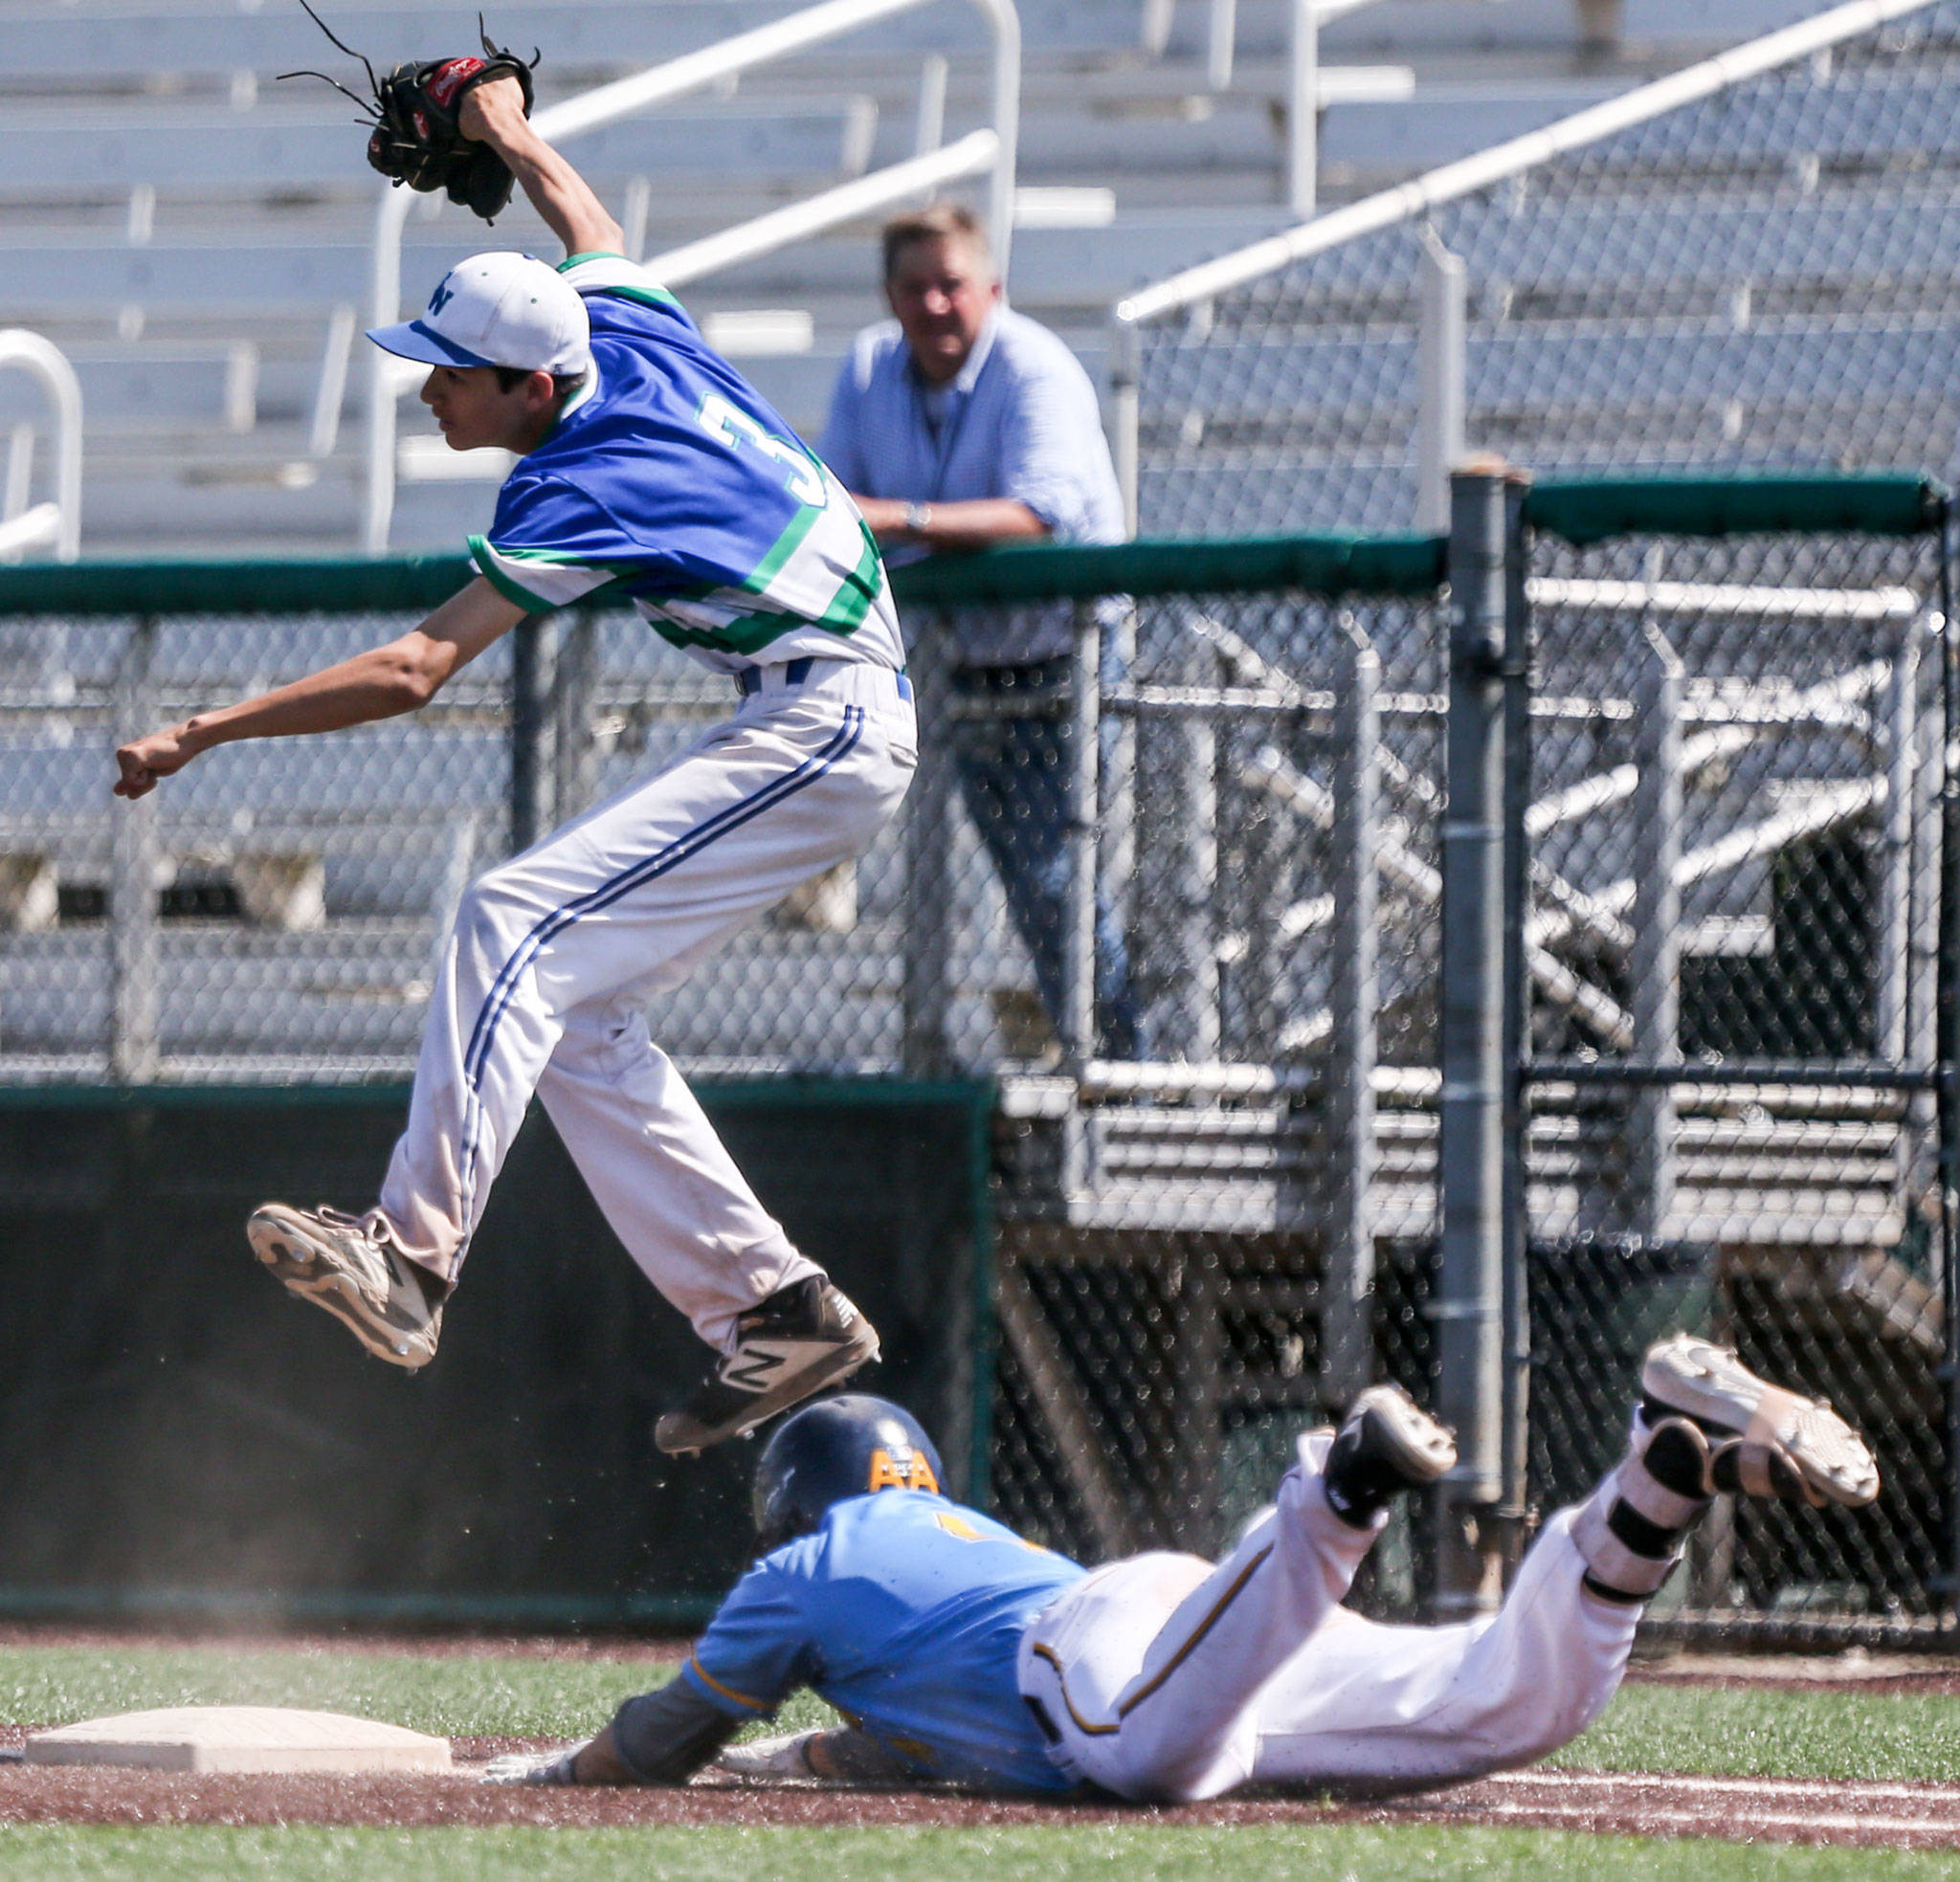 Everett's Tyler Bates slides into first under Shorewood's Kenji Miller during the 3A District title game at Funko Field in Everett on May 11. The Seagulls won 6-0. (Kevin Clark / The Herald)